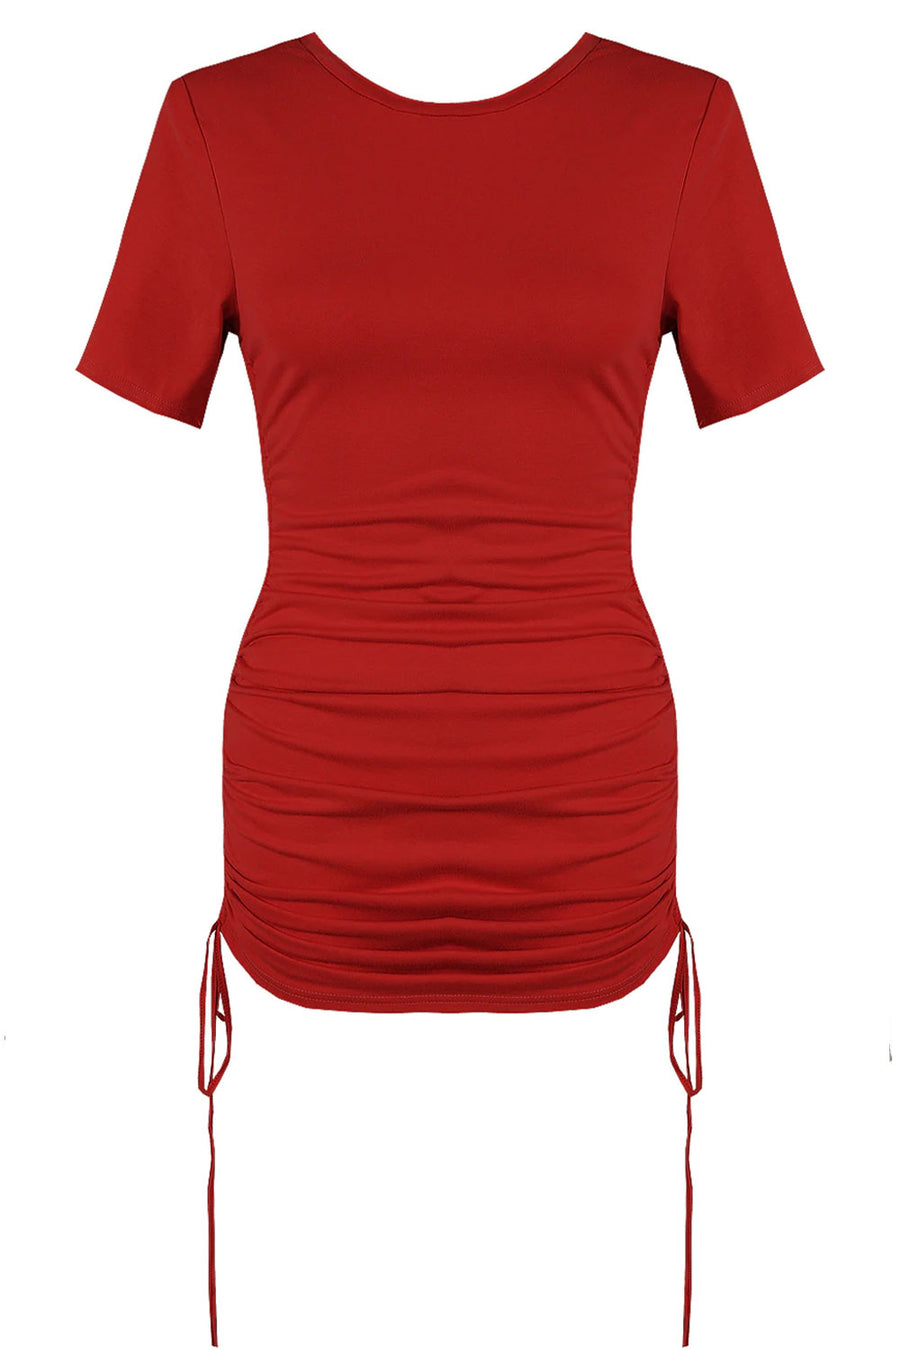 Red Short Sleeves Slinky Mini Dress - Harley